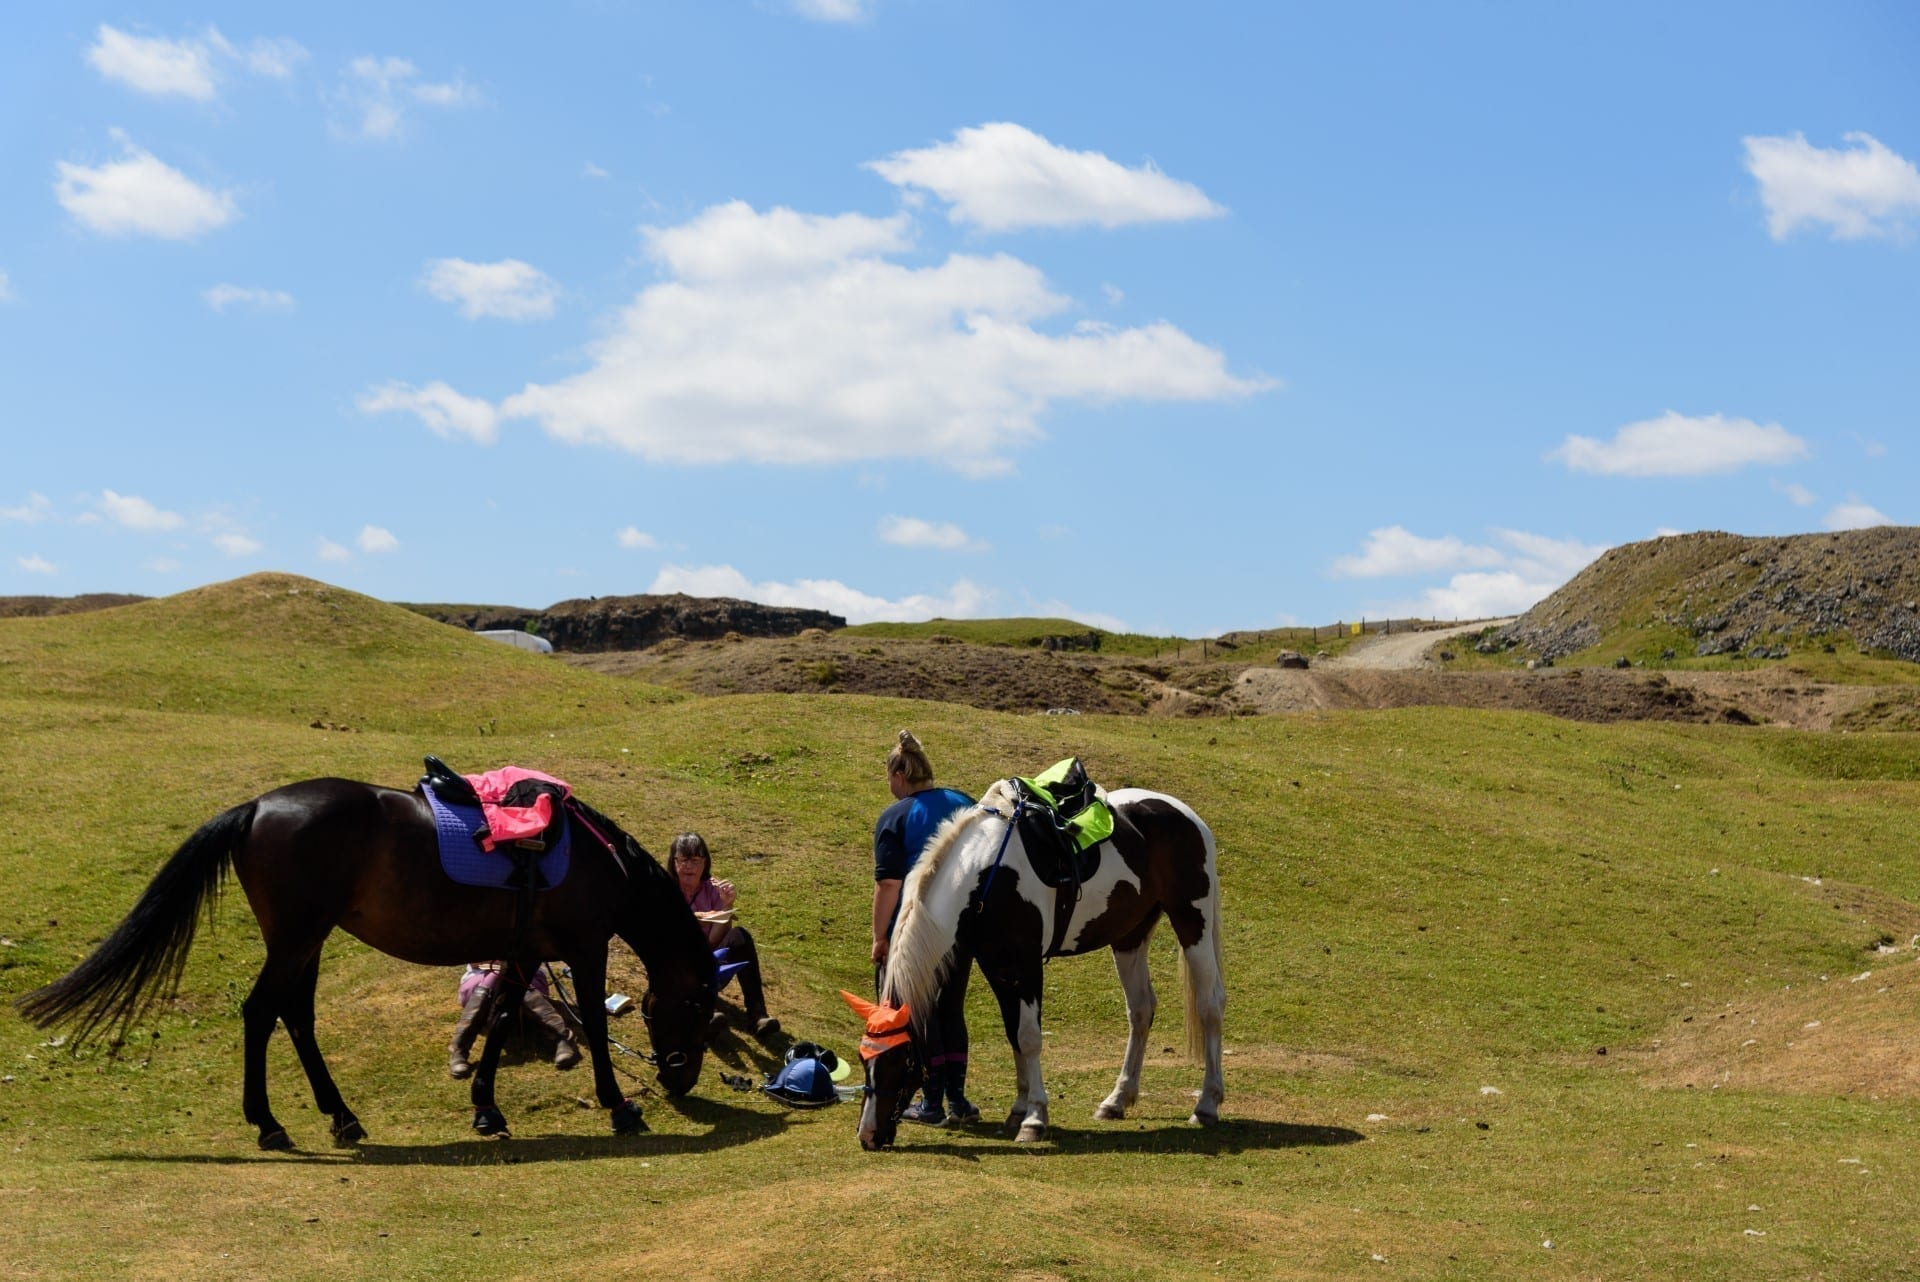 2 ladies resting with their horses in the Brecon Beacons